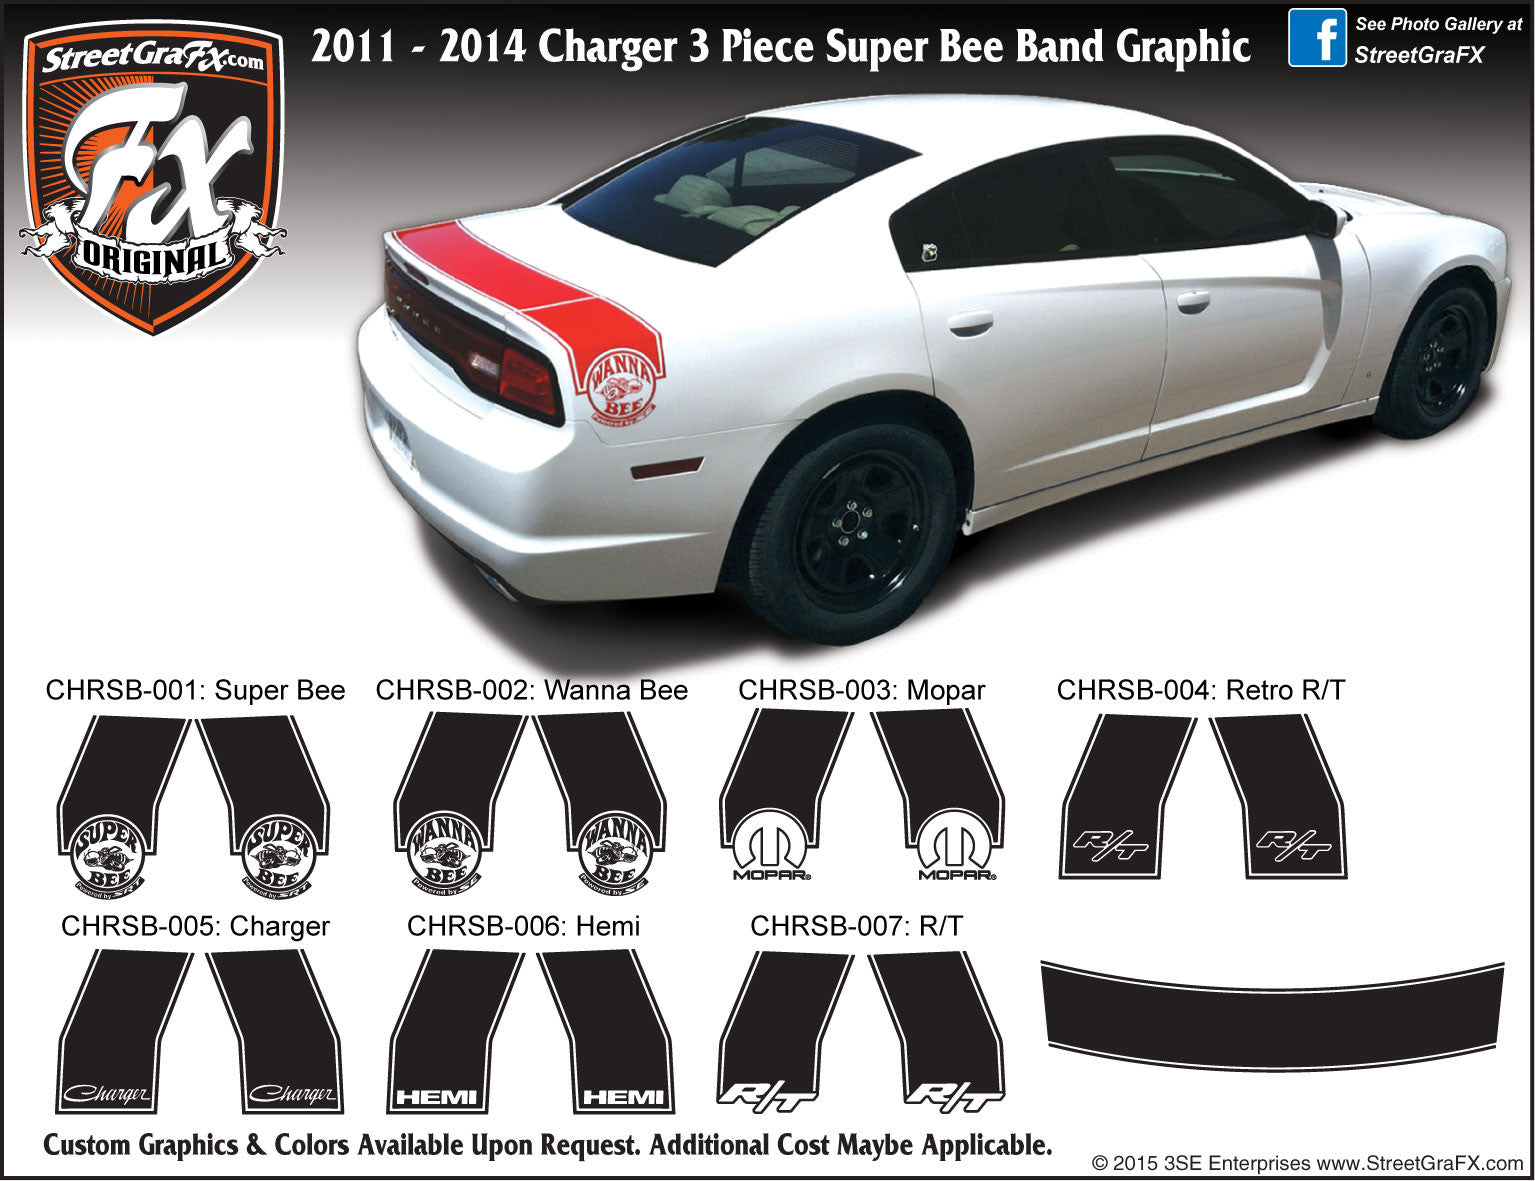 2006 07 08 0910 Dodge Charger Super Bee with Rocker Decals Graphics